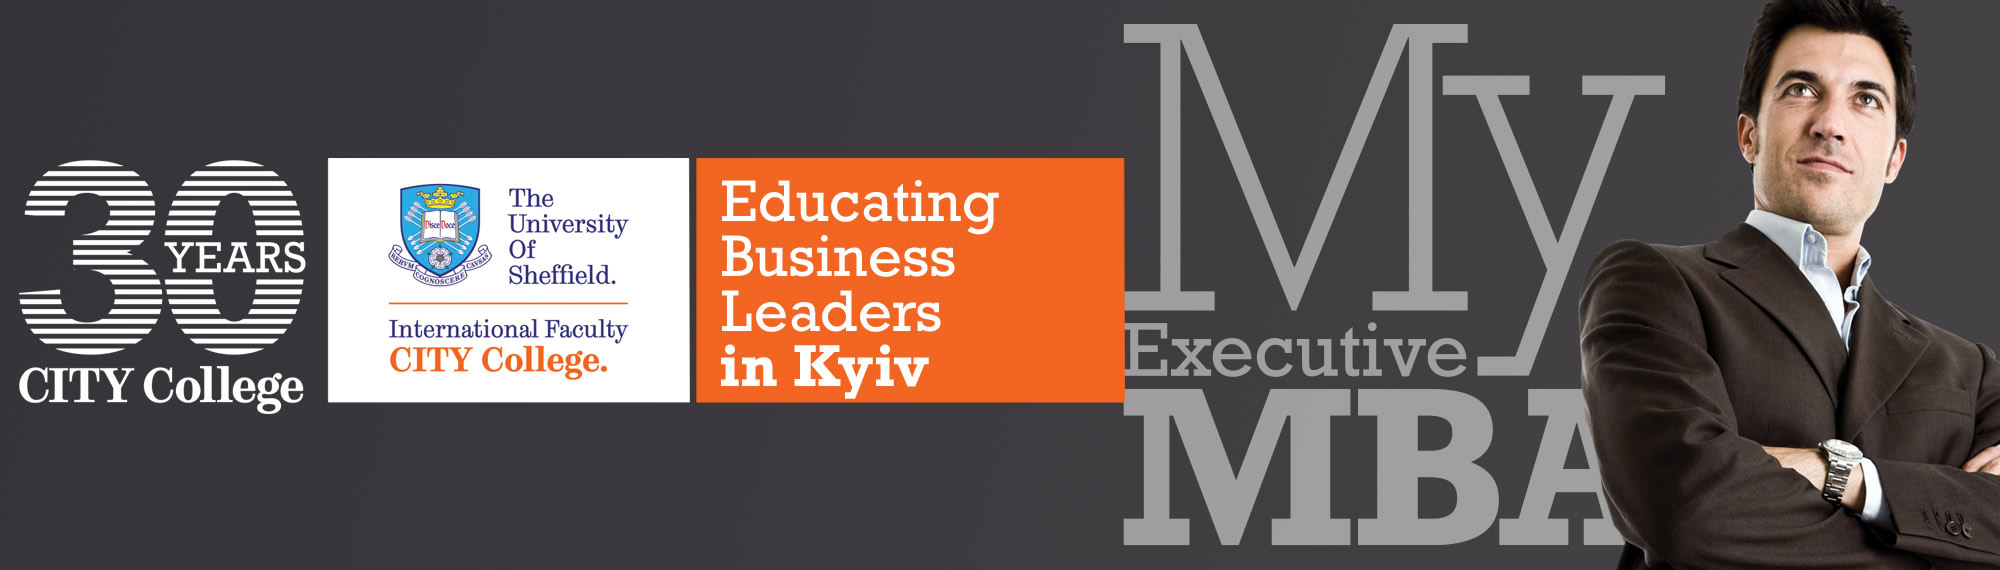 The University of Sheffield Executive MBA in Kyiv